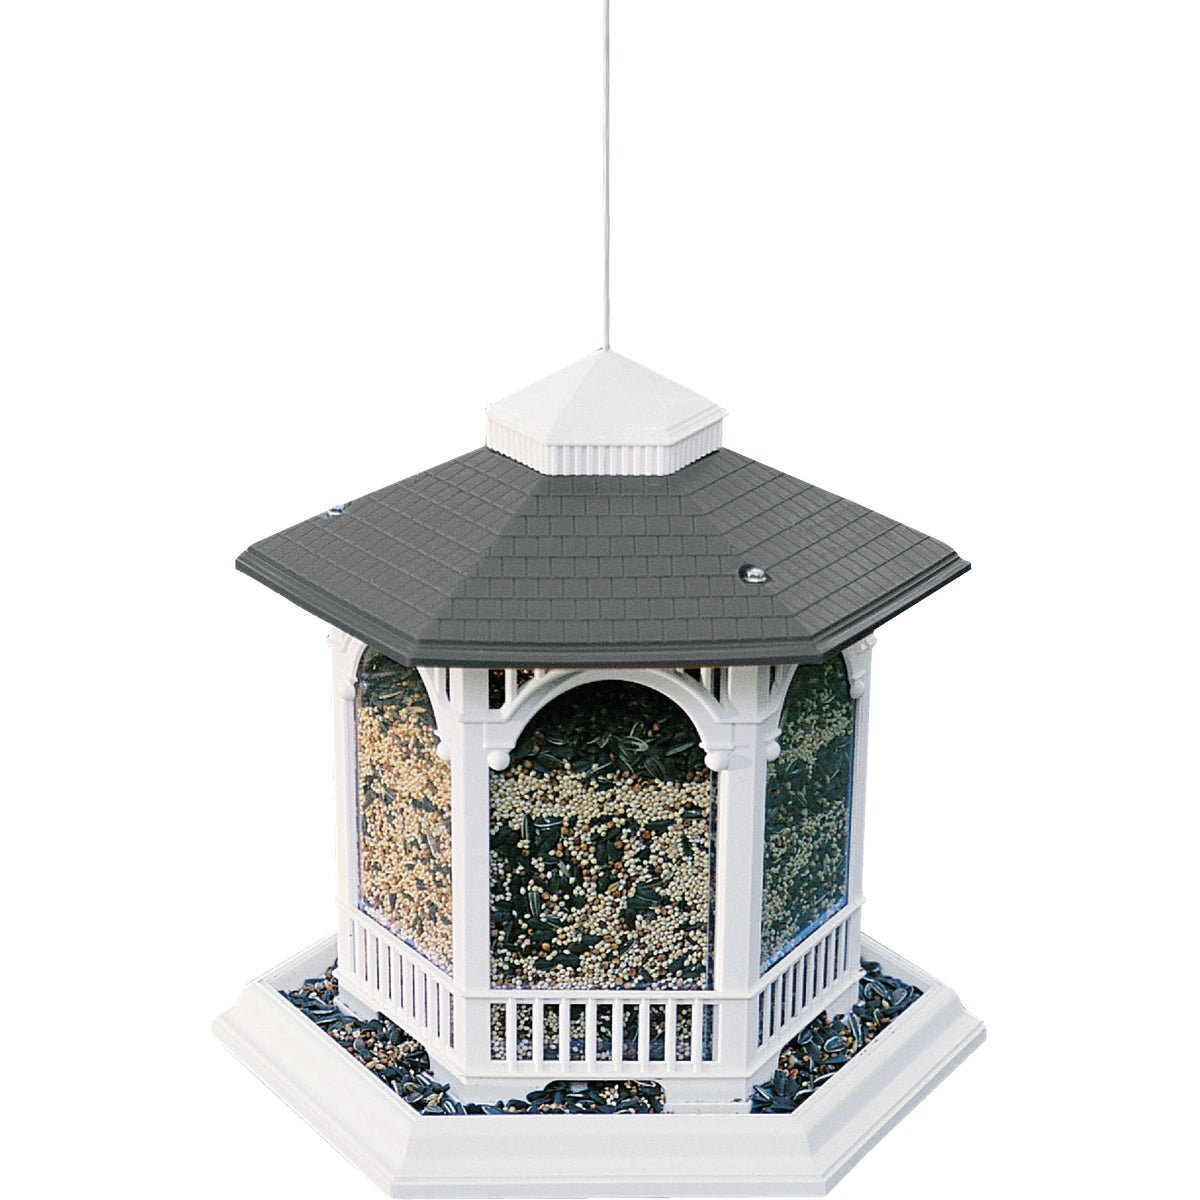 GAZEBO BIRD FEEDER - NA6262 by Kay Home Products